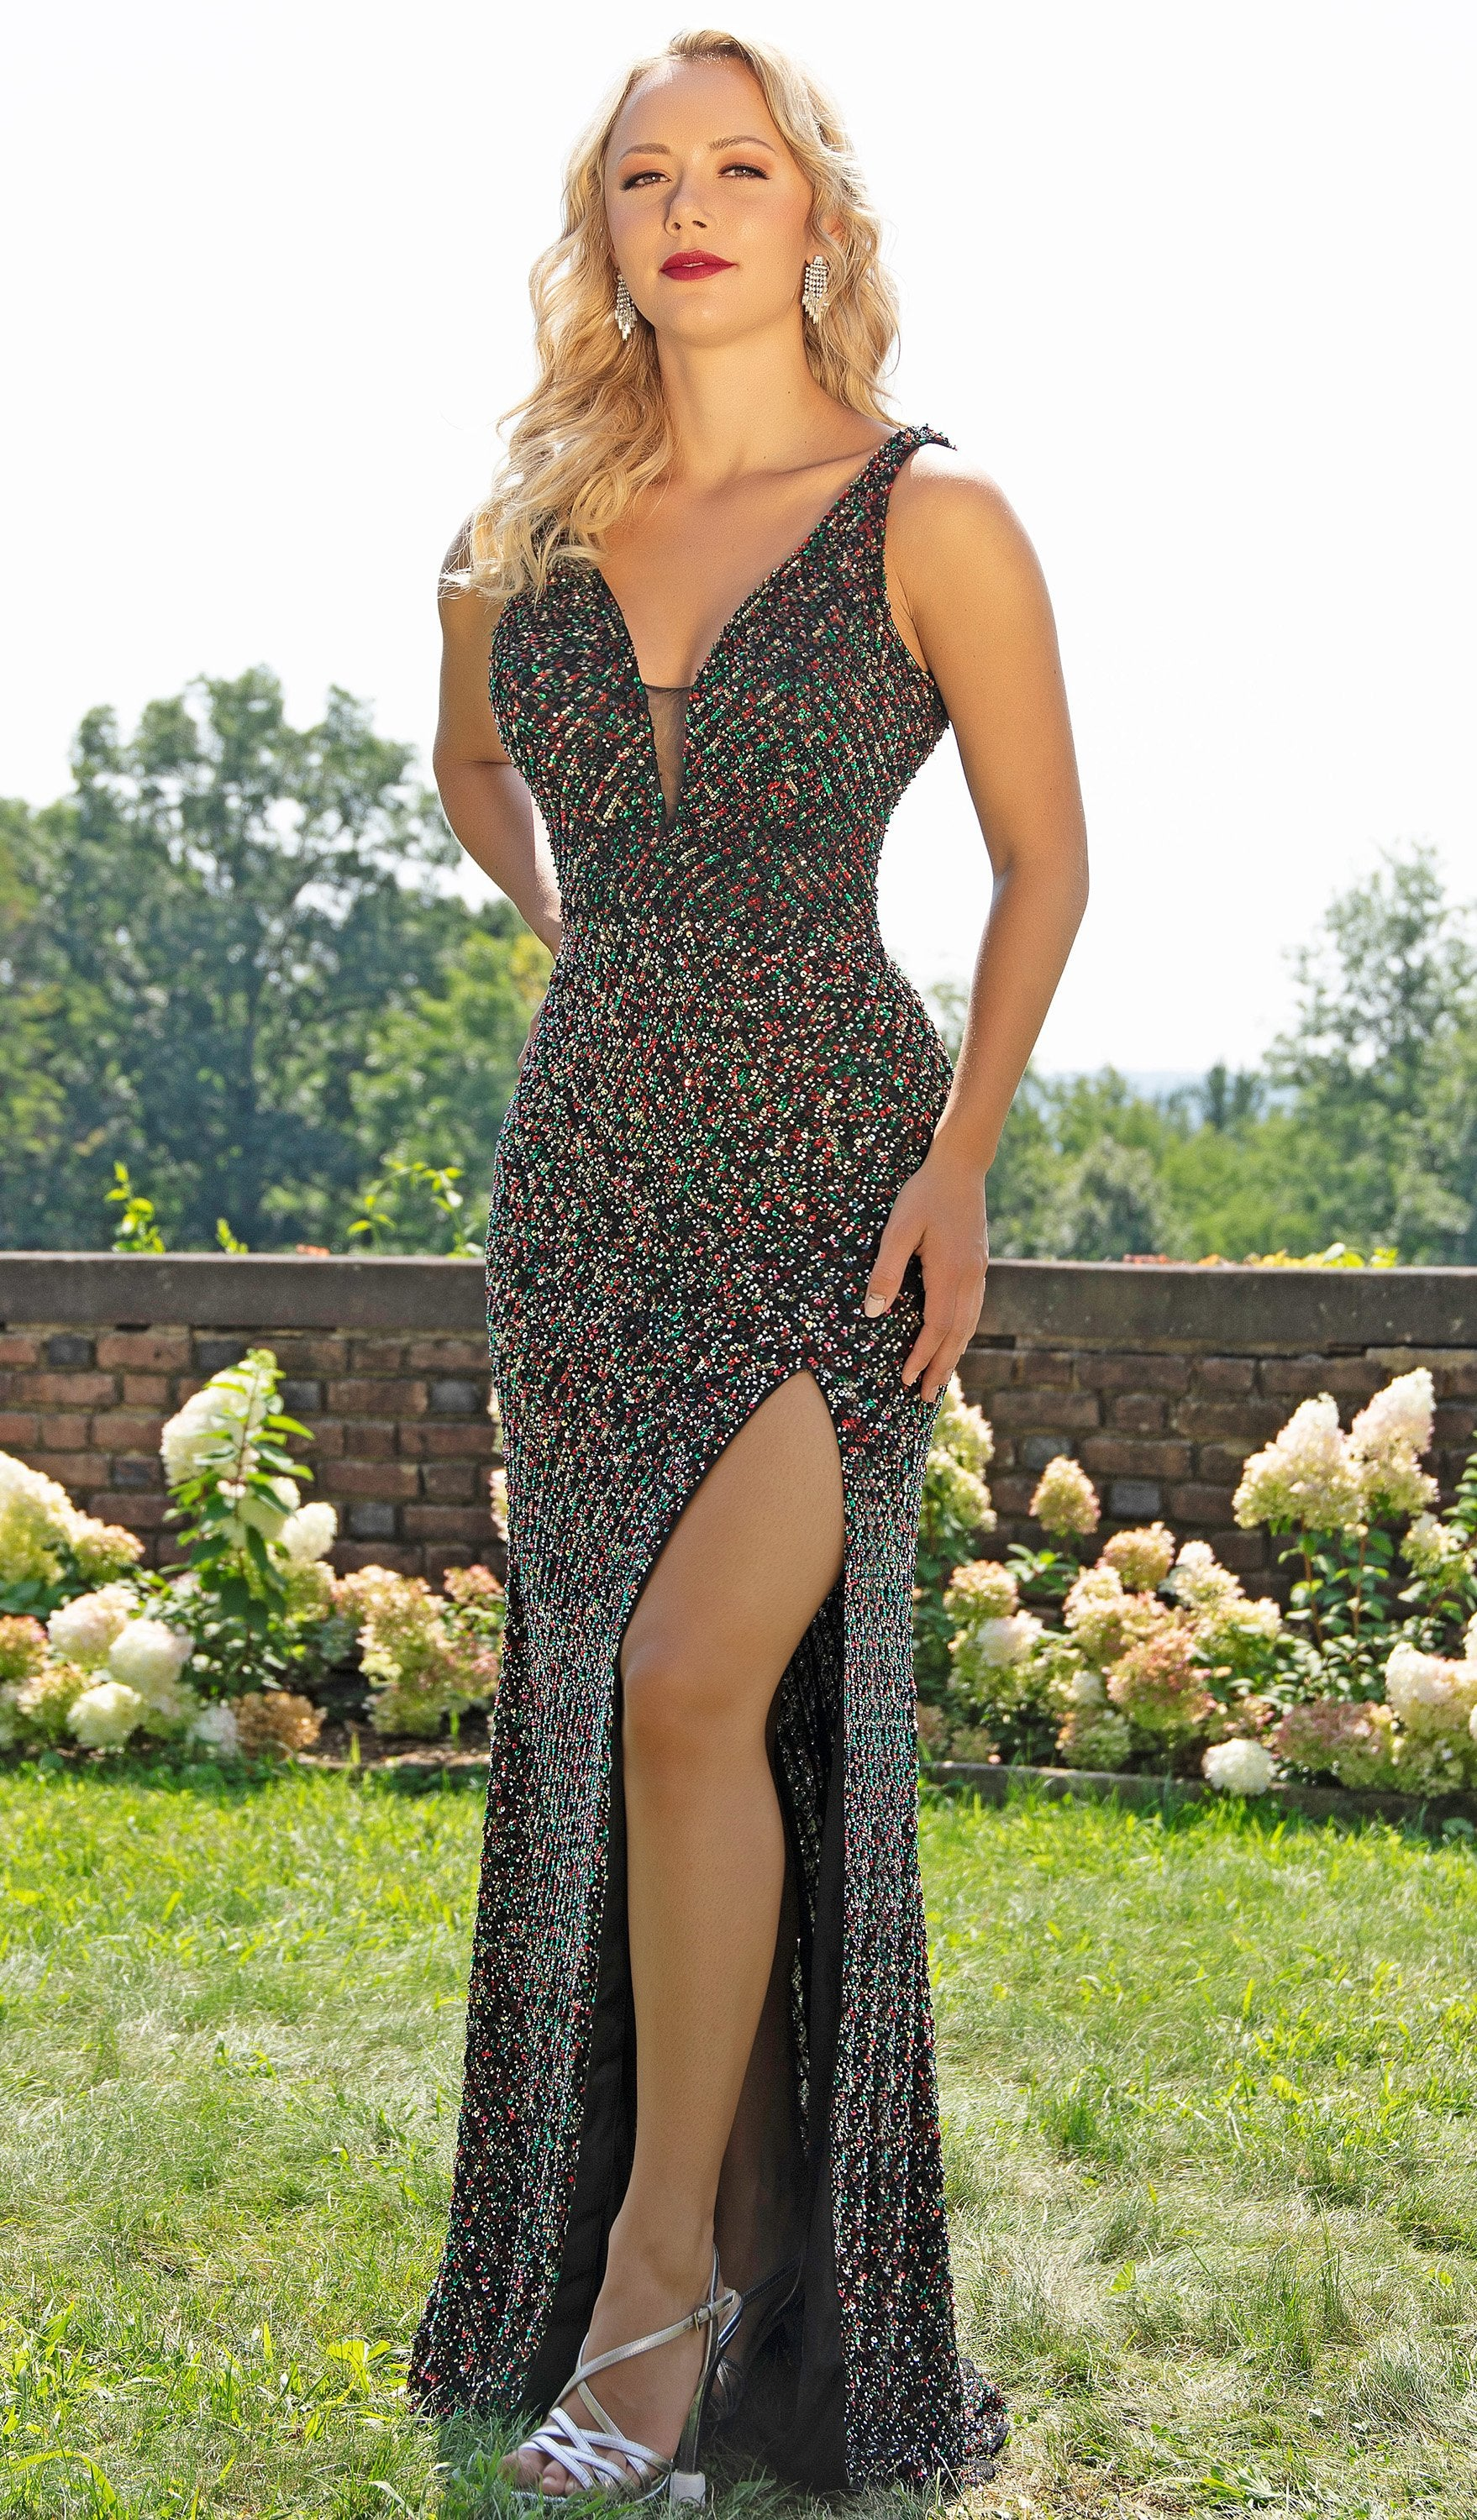 Primavera Couture - 3205 Sequin Embellished Plunging V Neck Gown In Black and Multi-Color